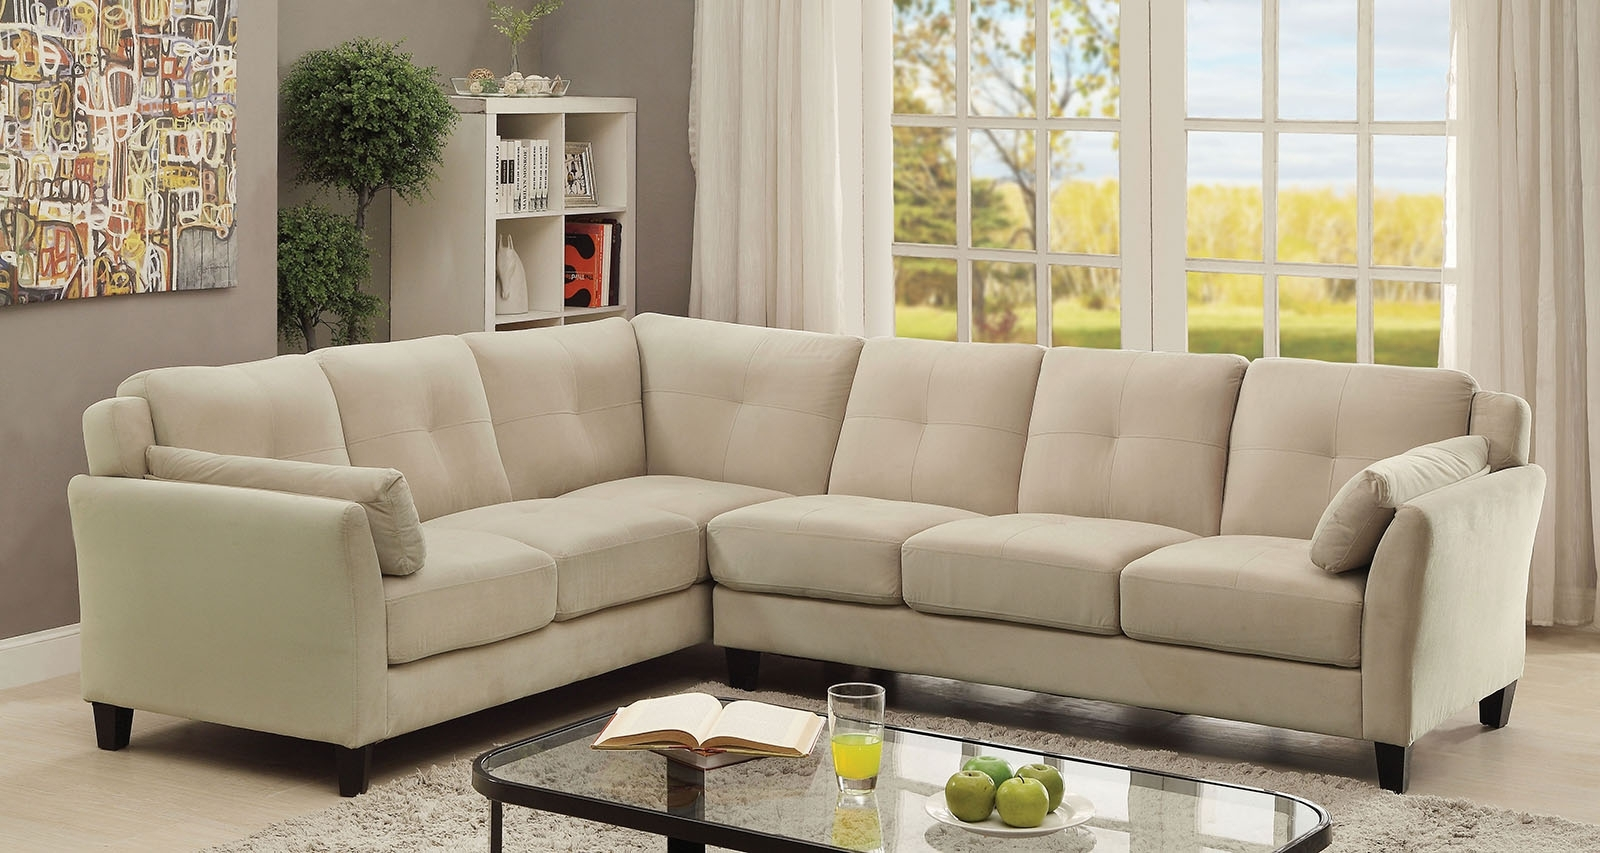 Sectional Sofa Sale Clearance Tags : 100 Incredible Sectional Sofa Intended For Michigan Sectional Sofas (Image 7 of 10)